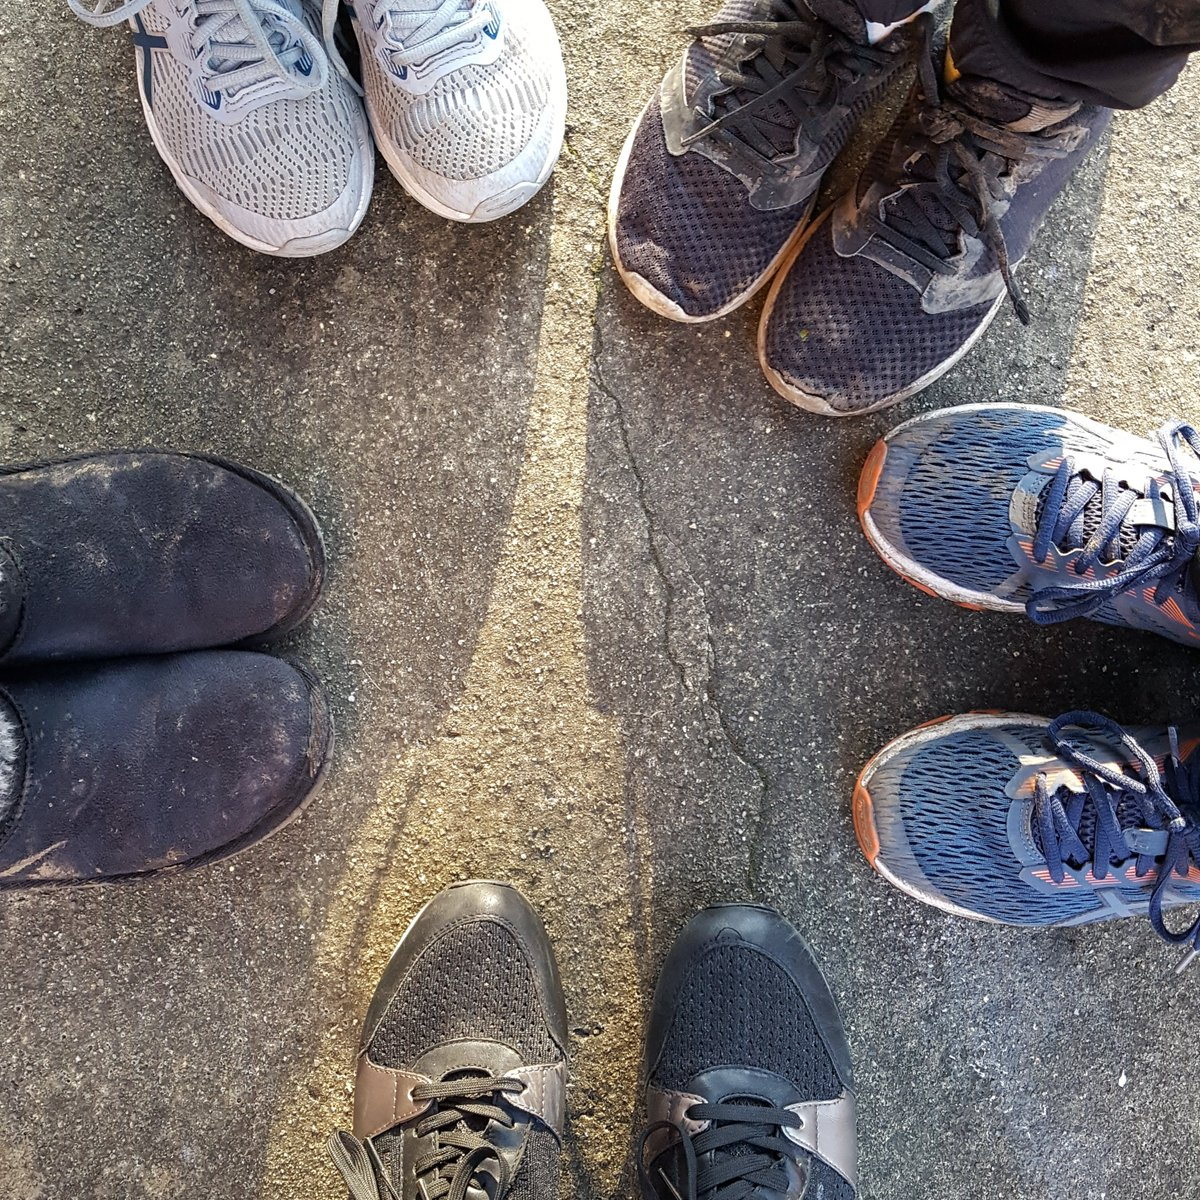 Day 17 #100daysofwalking - lots of company with little people today. Friday after school play date #homelifebalance pic.twitter.com/q7VlrPJr82